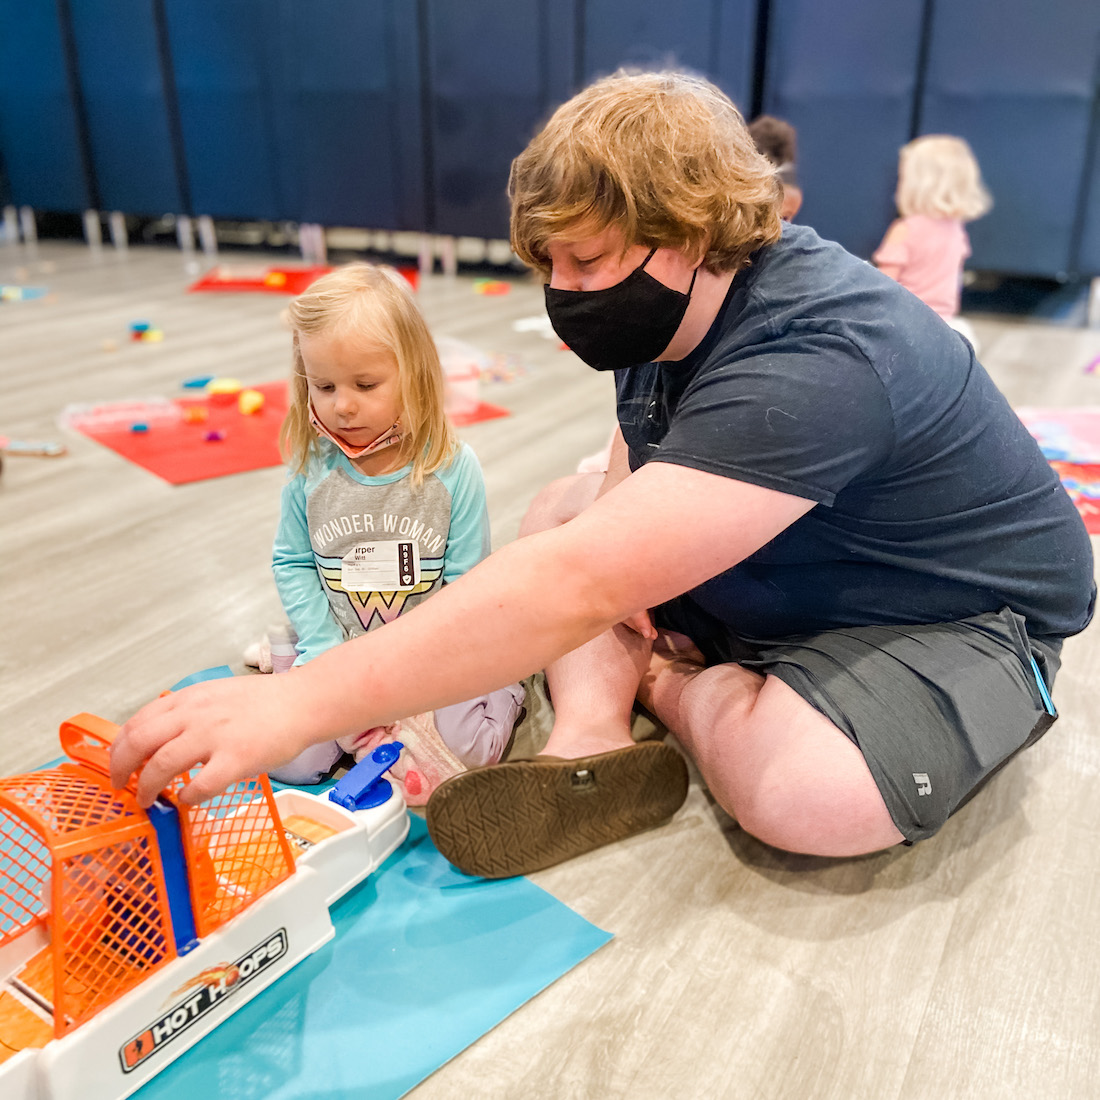 simple-church_west-des-moines_child-with-volunteer.jpg